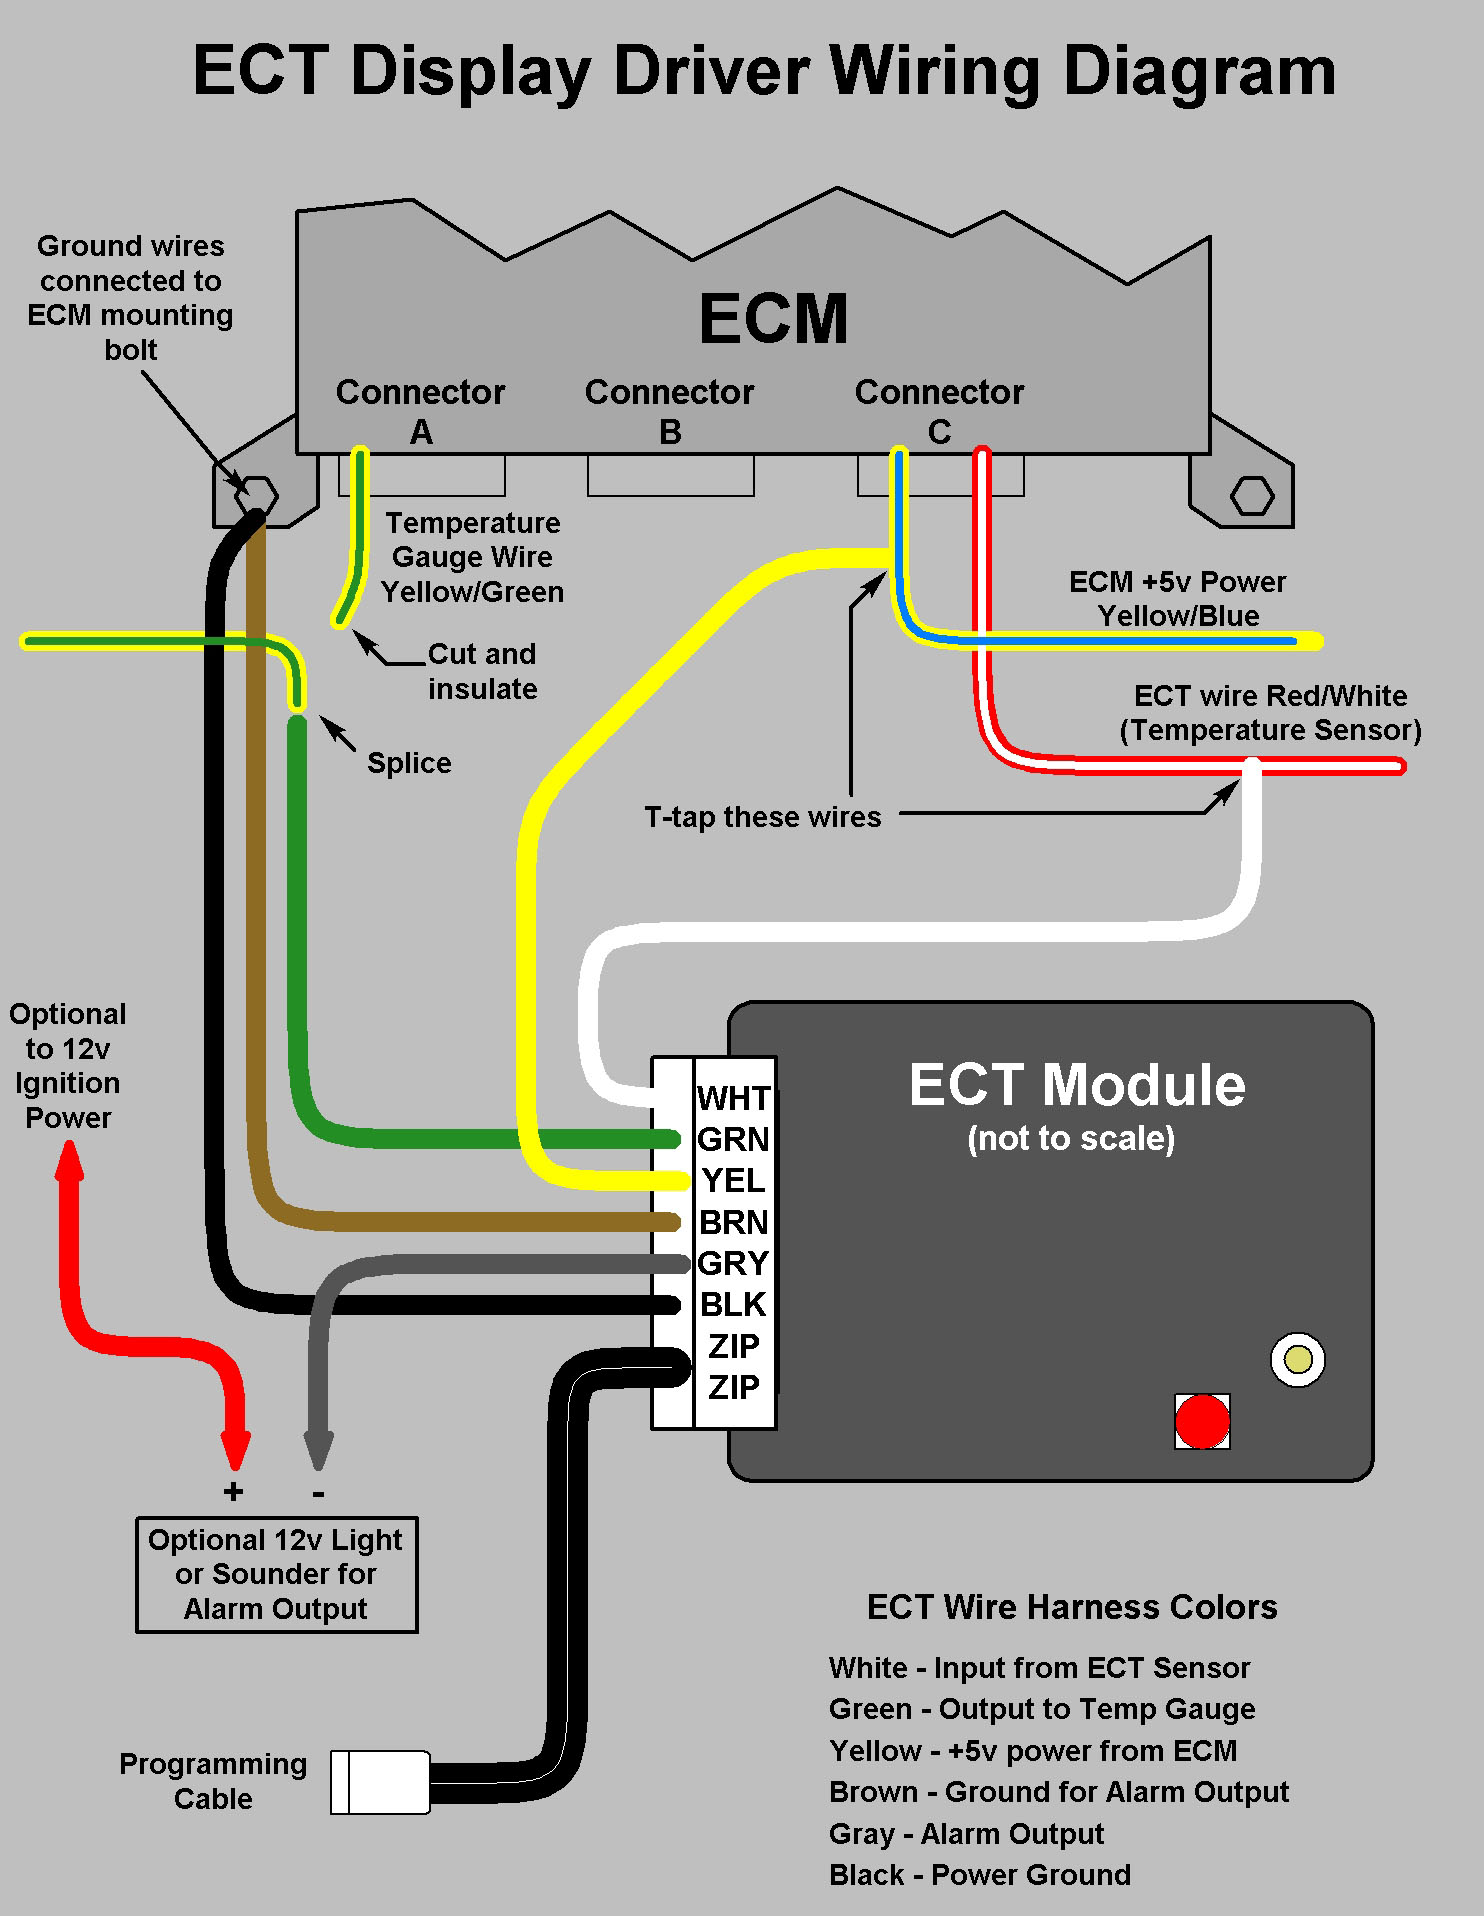 ECT wiring diagram ems wiring diagram management system \u2022 wiring diagrams j squared co edison plug wiring diagram at cita.asia